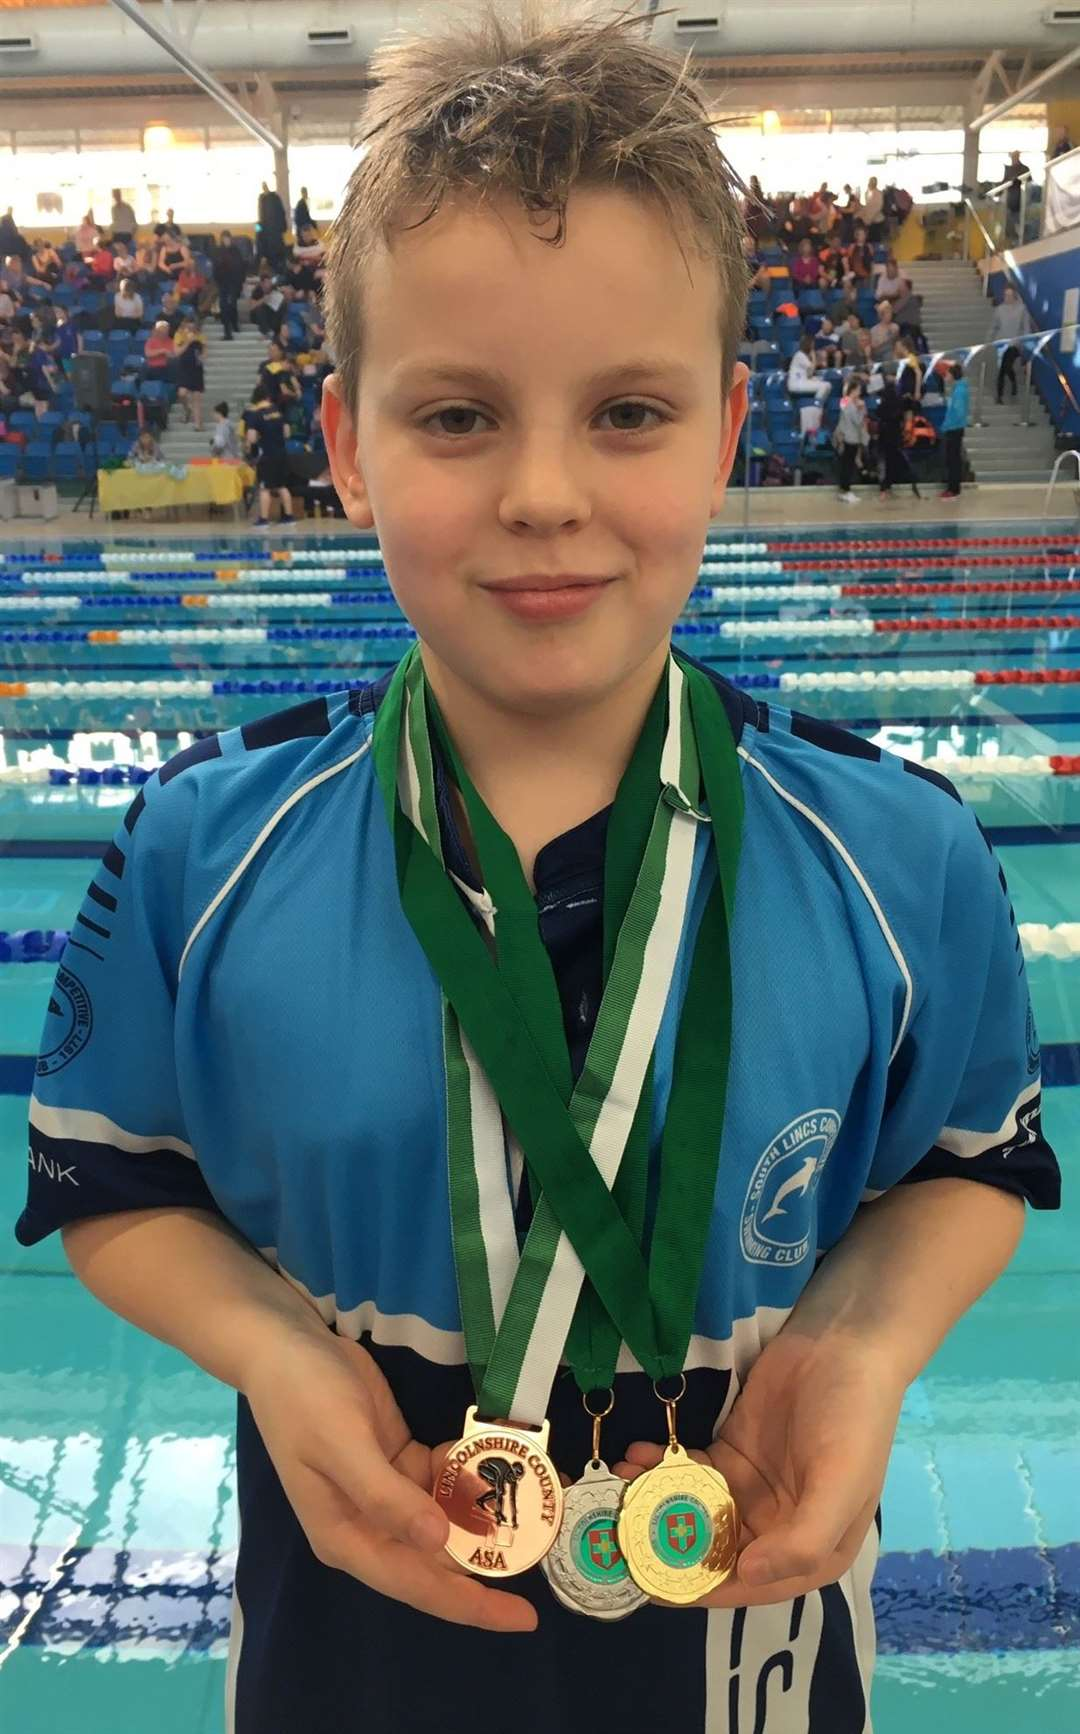 South Lincs Competitive Swimming Club medallist Frank Lamb.Photo supplied.